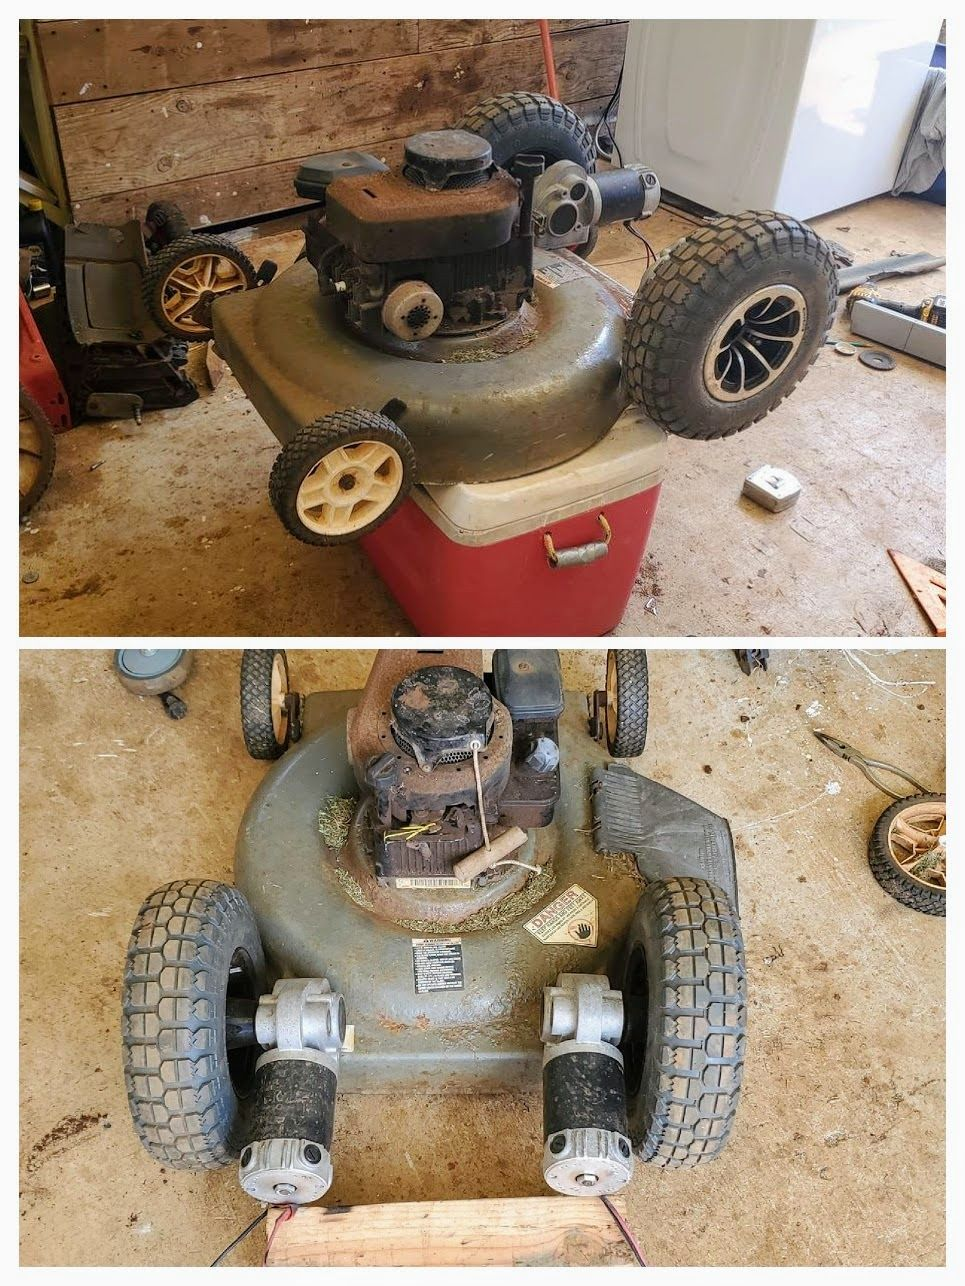 Rc Lawn Mowers By Jesse Makermotor Robotic Lawn Mower Lawn Mower Mower